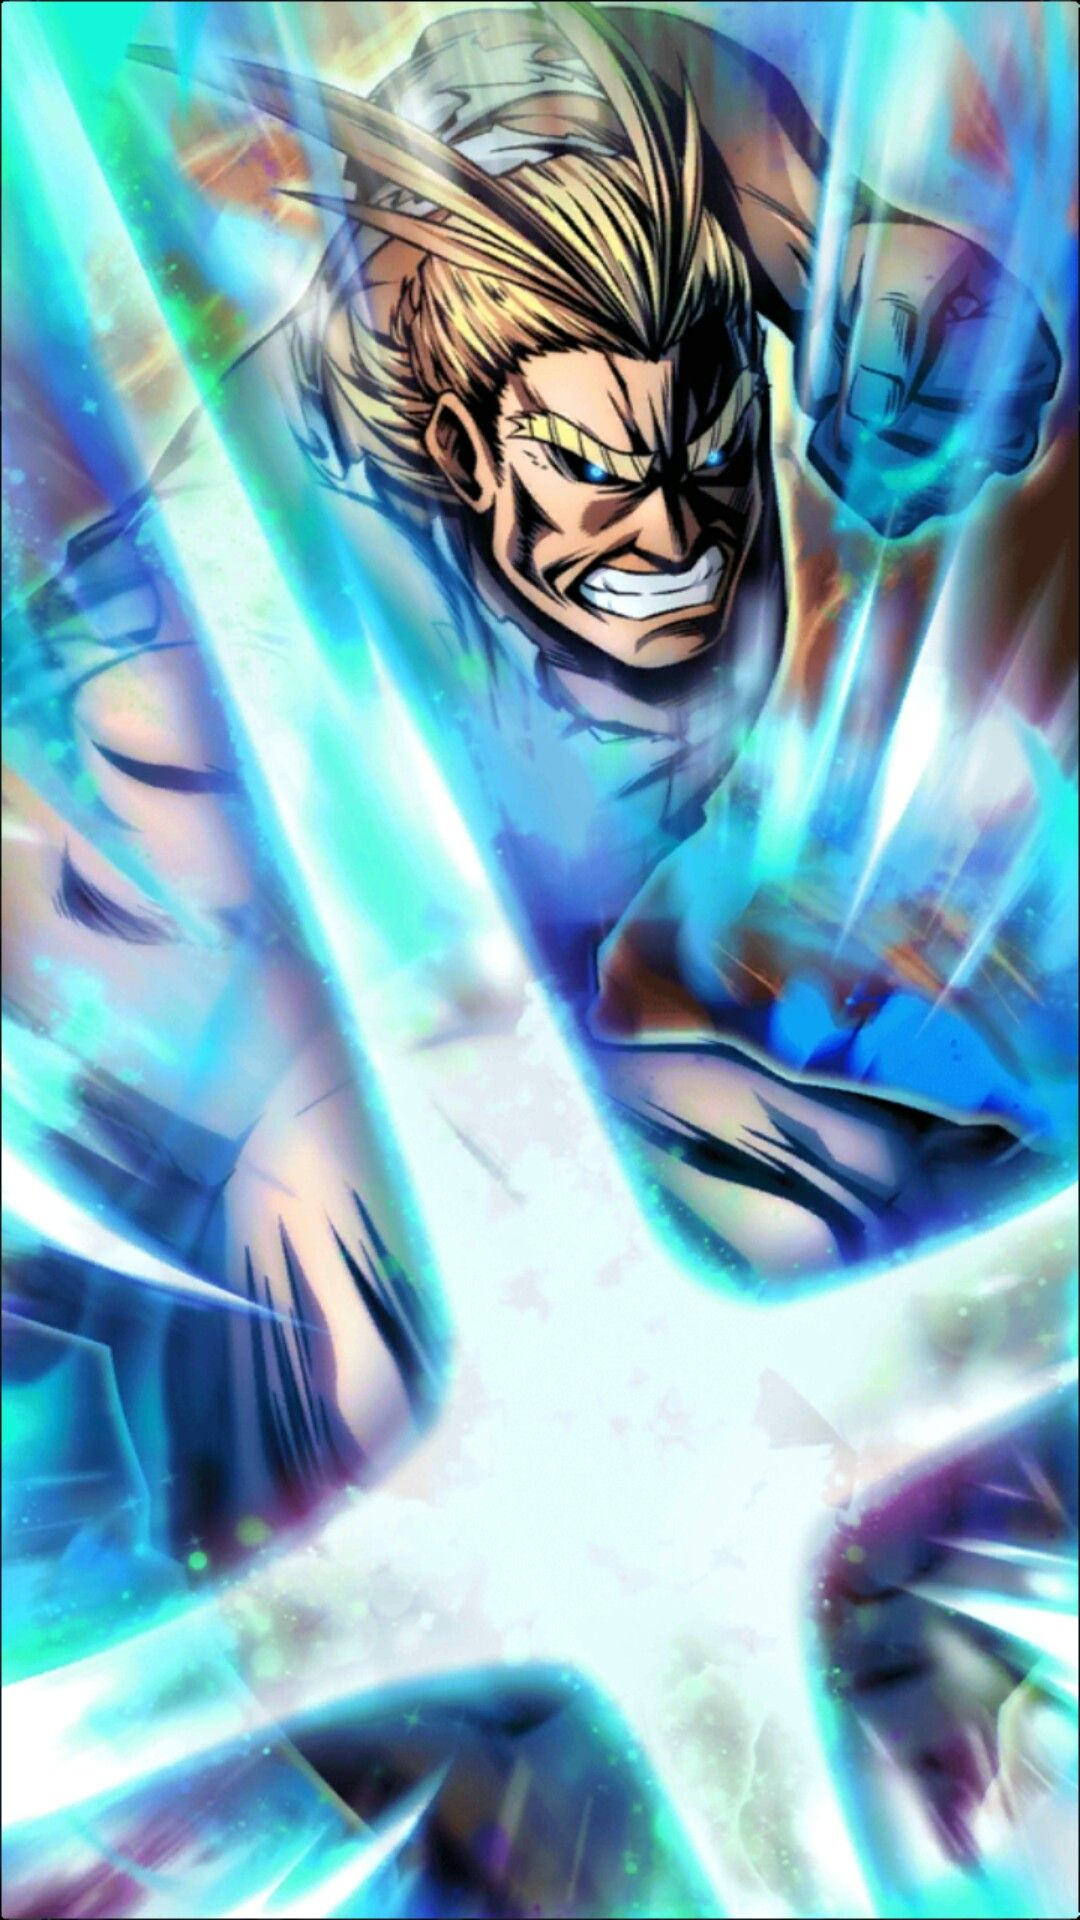 My hero academia 1080p, 2k, 4k, 5k hd wallpapers free download, these wallpapers are free download for pc, laptop, iphone, android phone and ipad desktop. #One For All #All Might #100% #Plus Ultra | Hero wallpaper ...